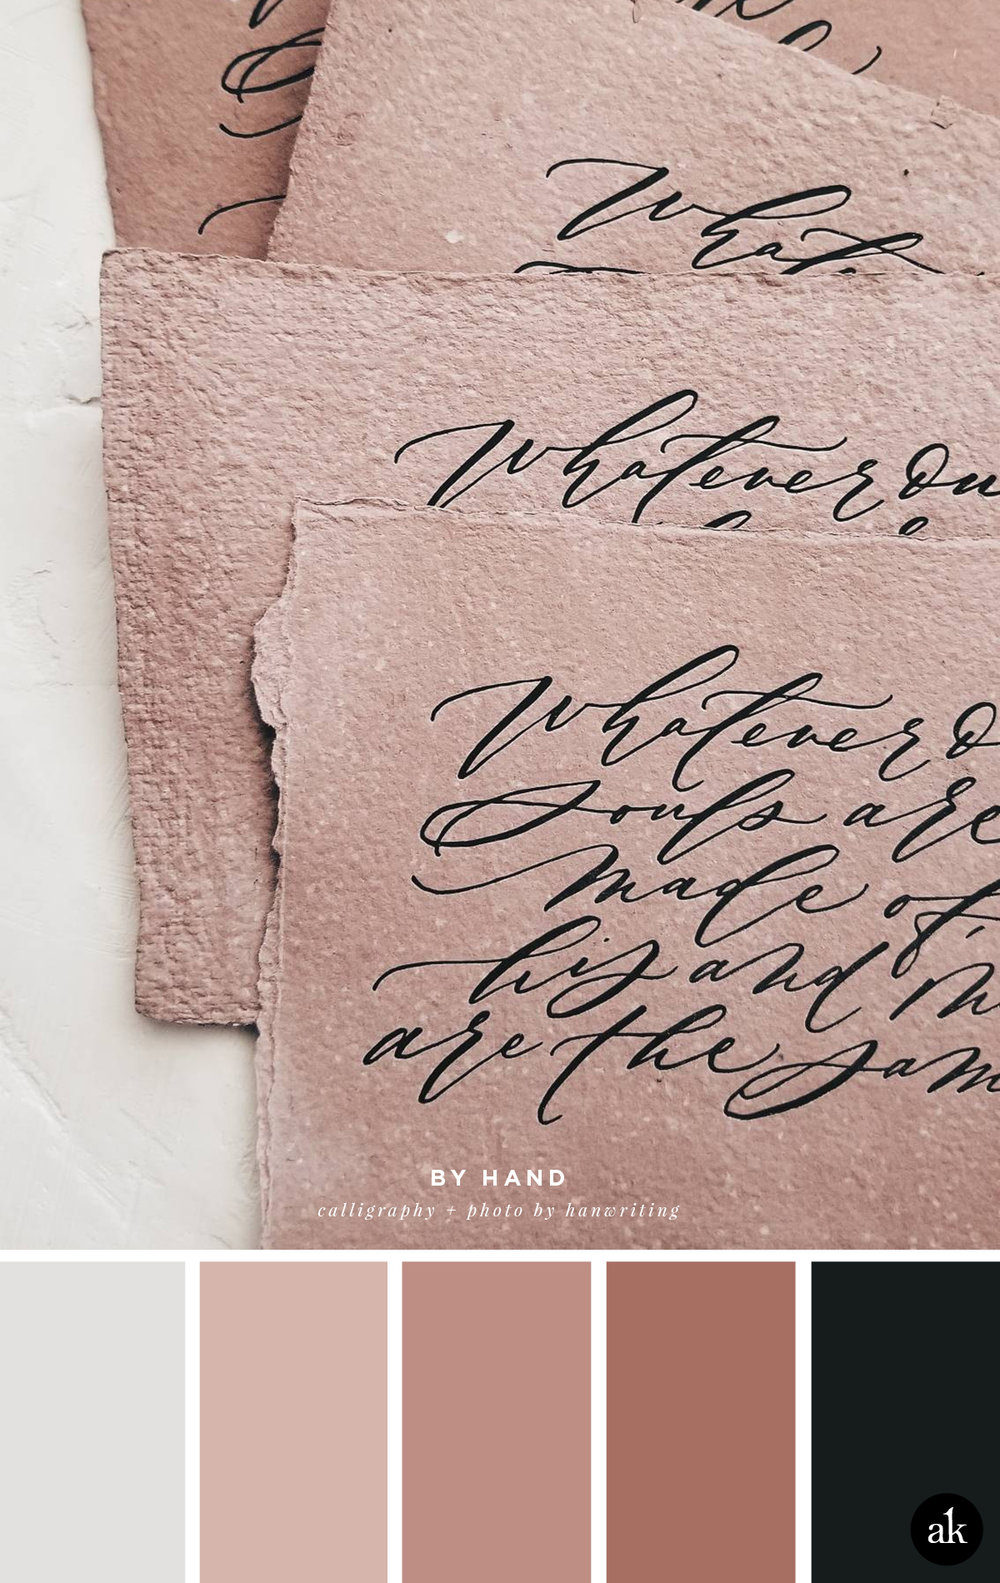 a calligraphy-inspired color palette // black, rose, gray // calligraphy + photo by hanwriting